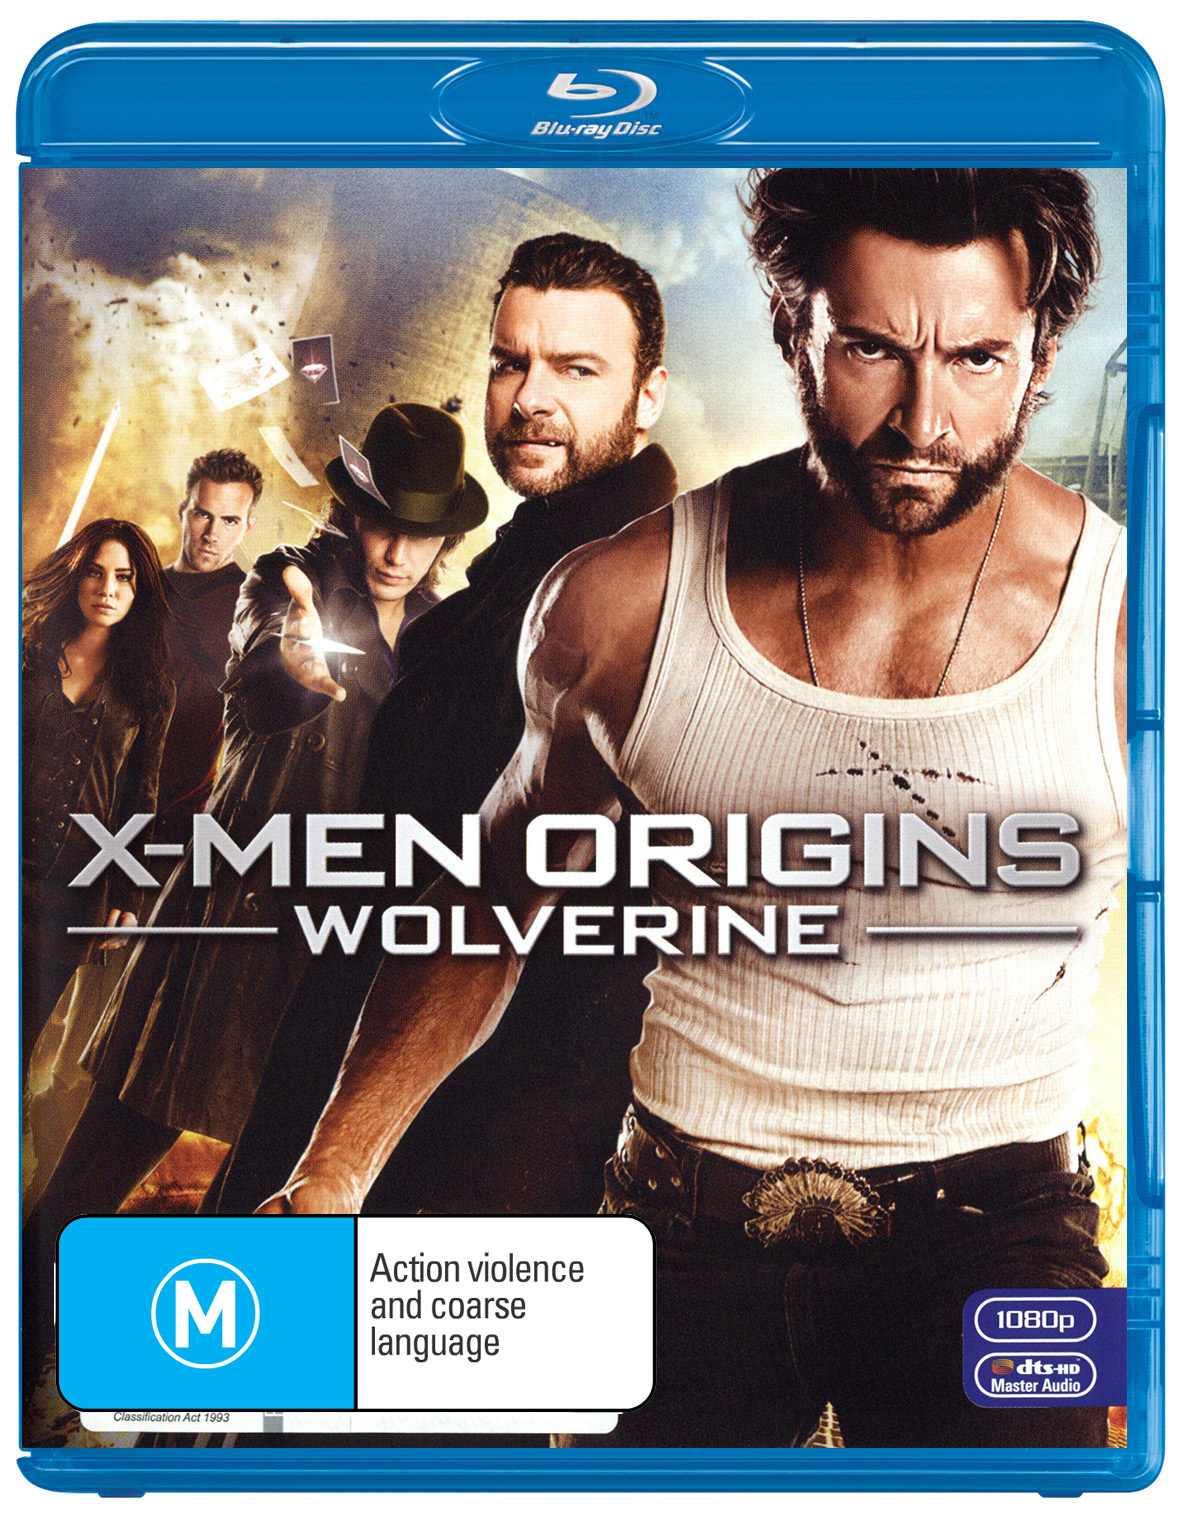 X-Men Origins: Wolverine on Blu-ray image